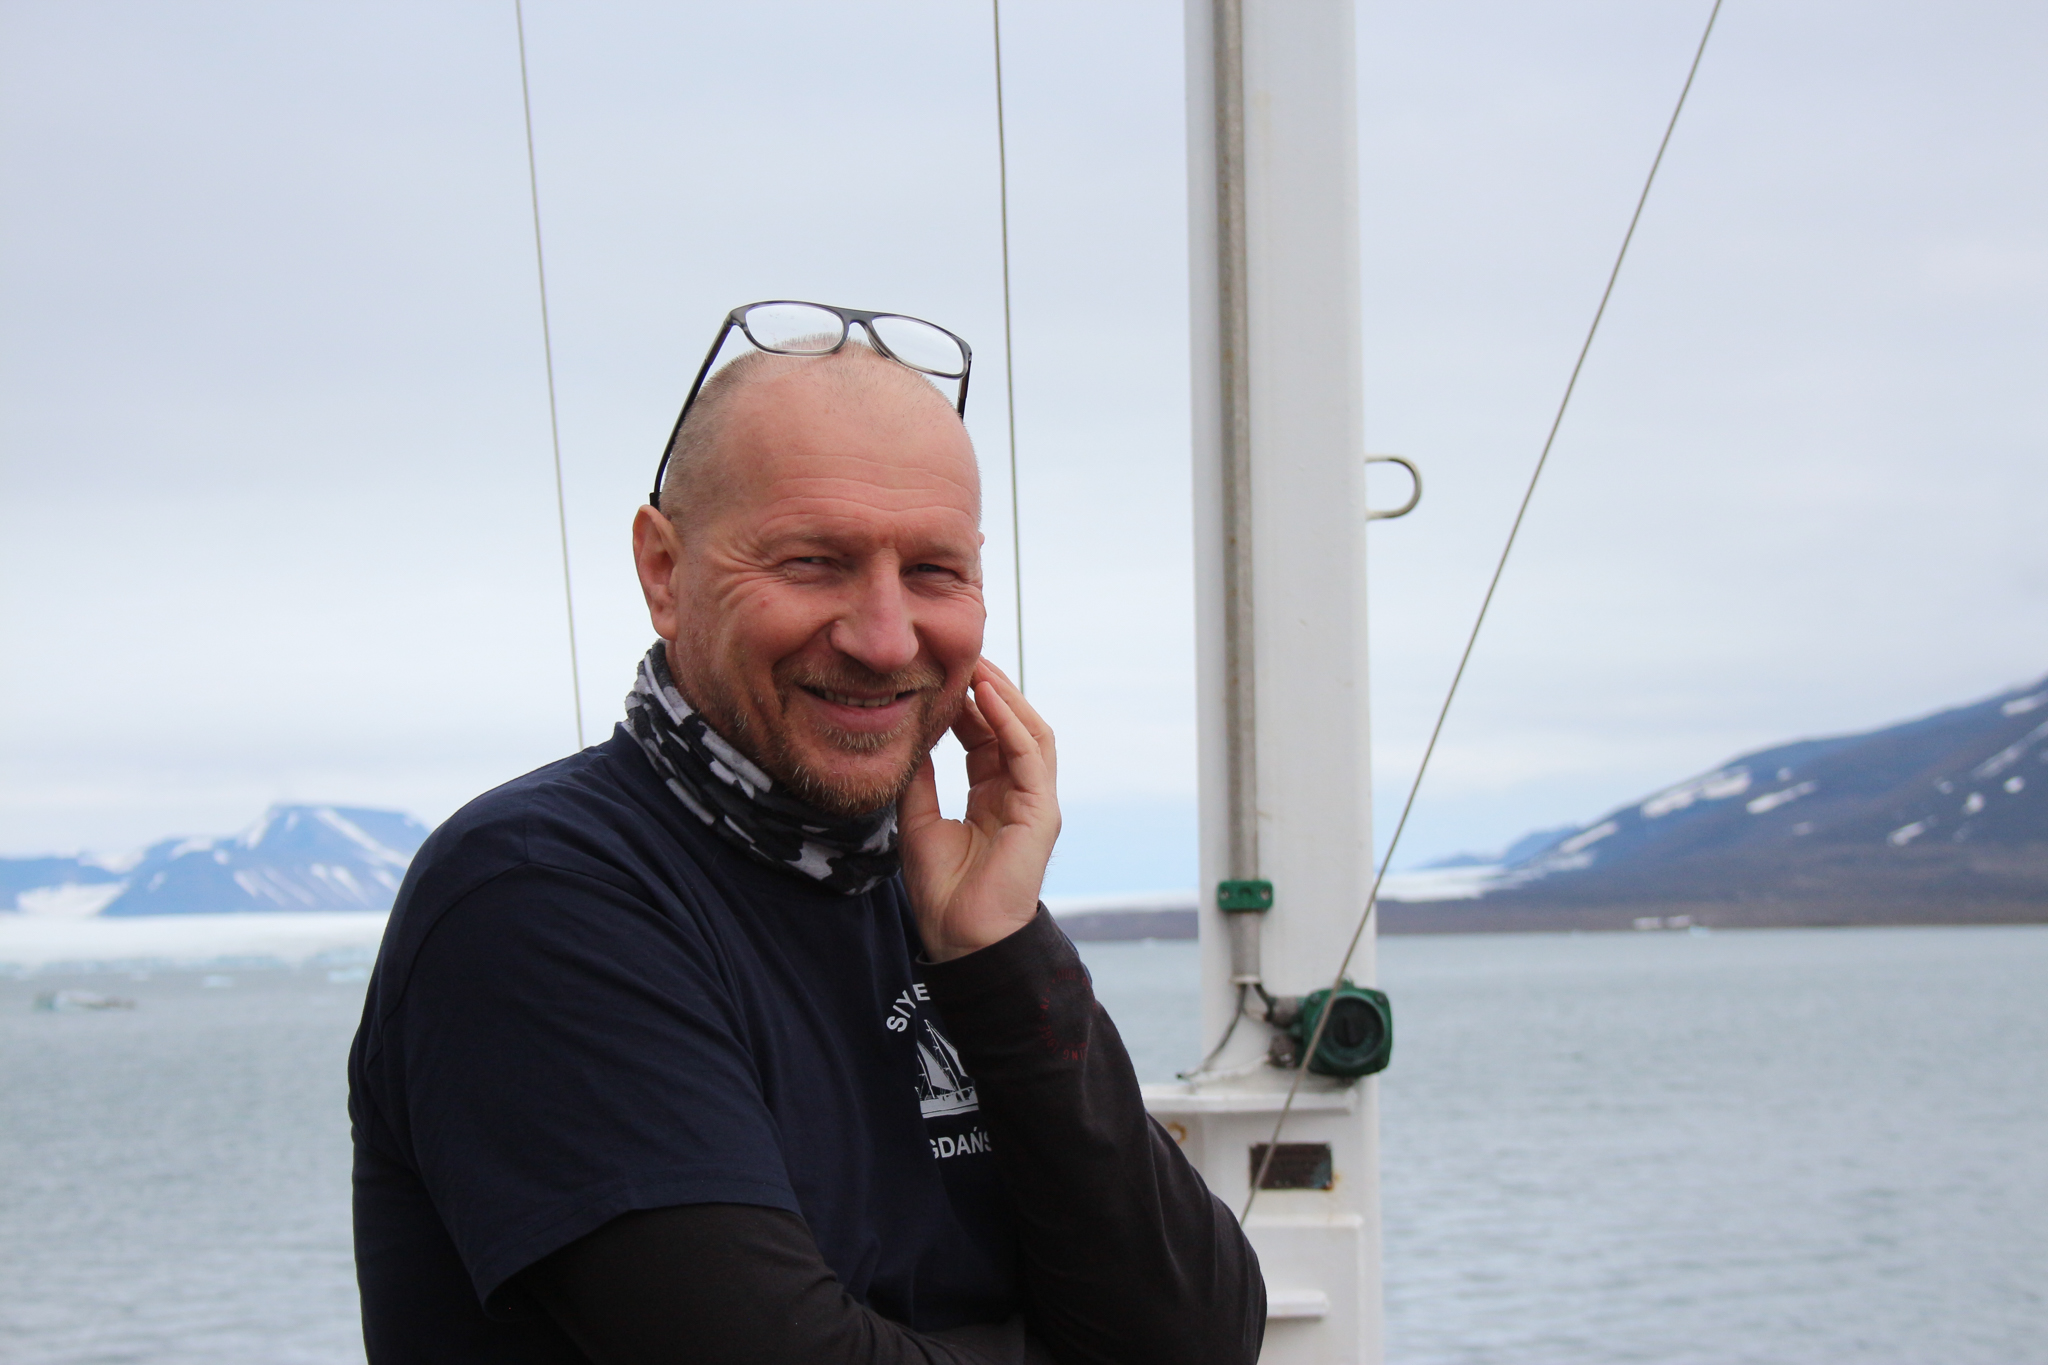 Sławomir Kwaśniewski first visited Spitsbergen in 1980 as a university student, and has since spent decades studying the warm waters of the West Spitsbergen Current flowing into the Arctic (and more recently the fjords). Photograph by Hannah Hoag